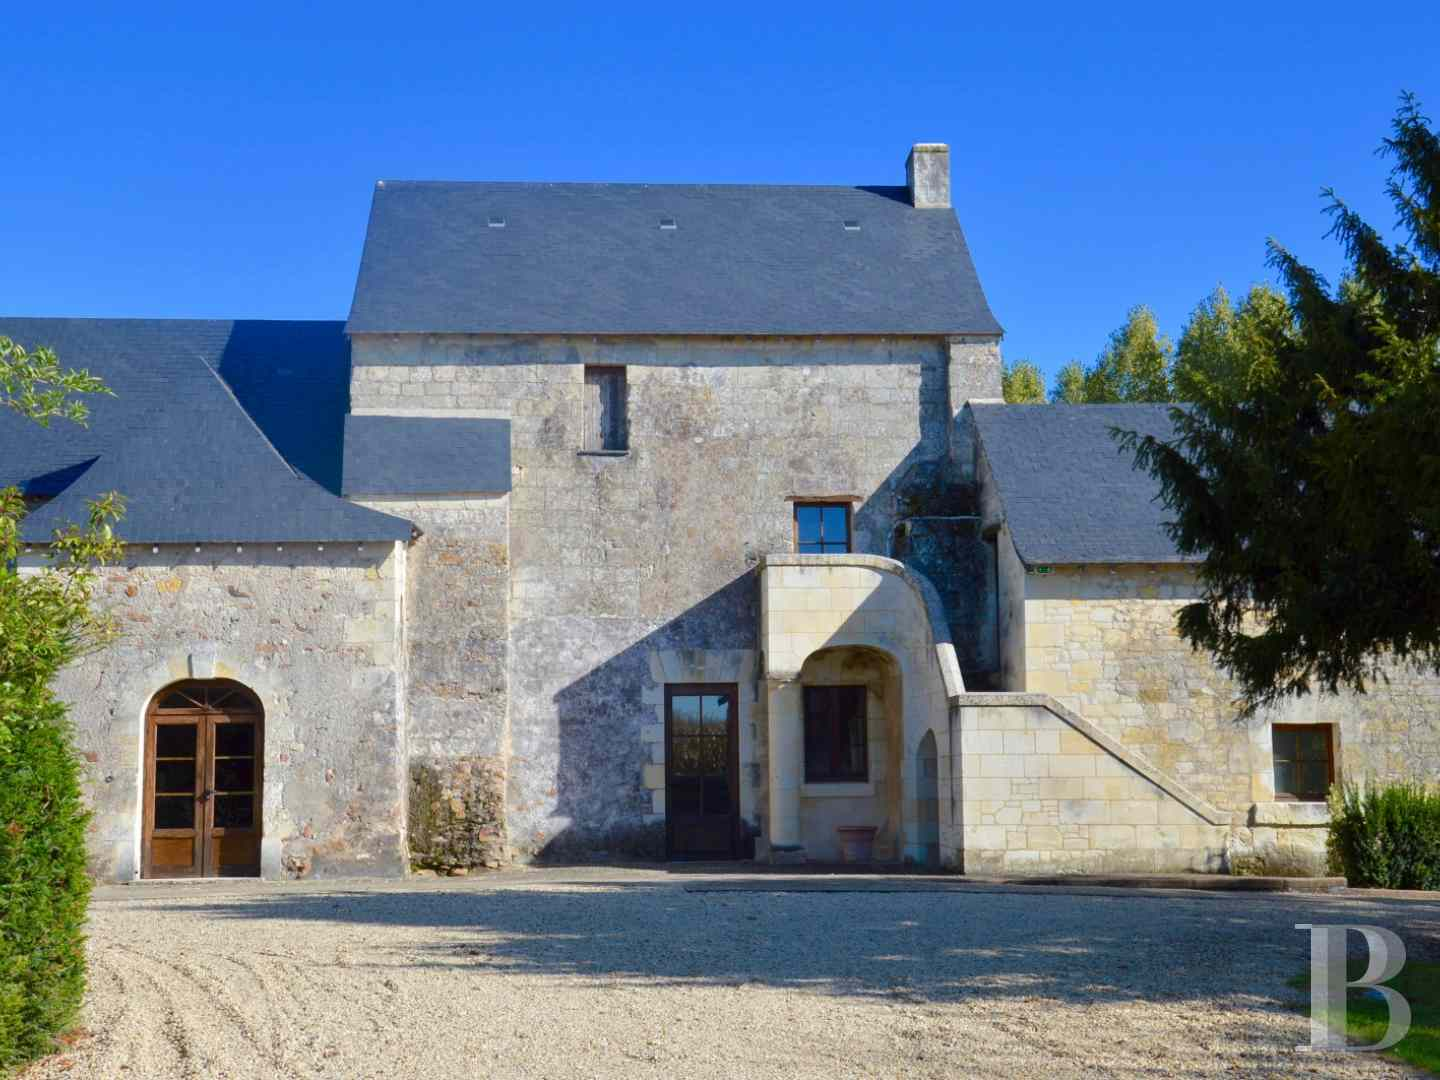 France mansions for sale pays de loire manor house - 3 zoom